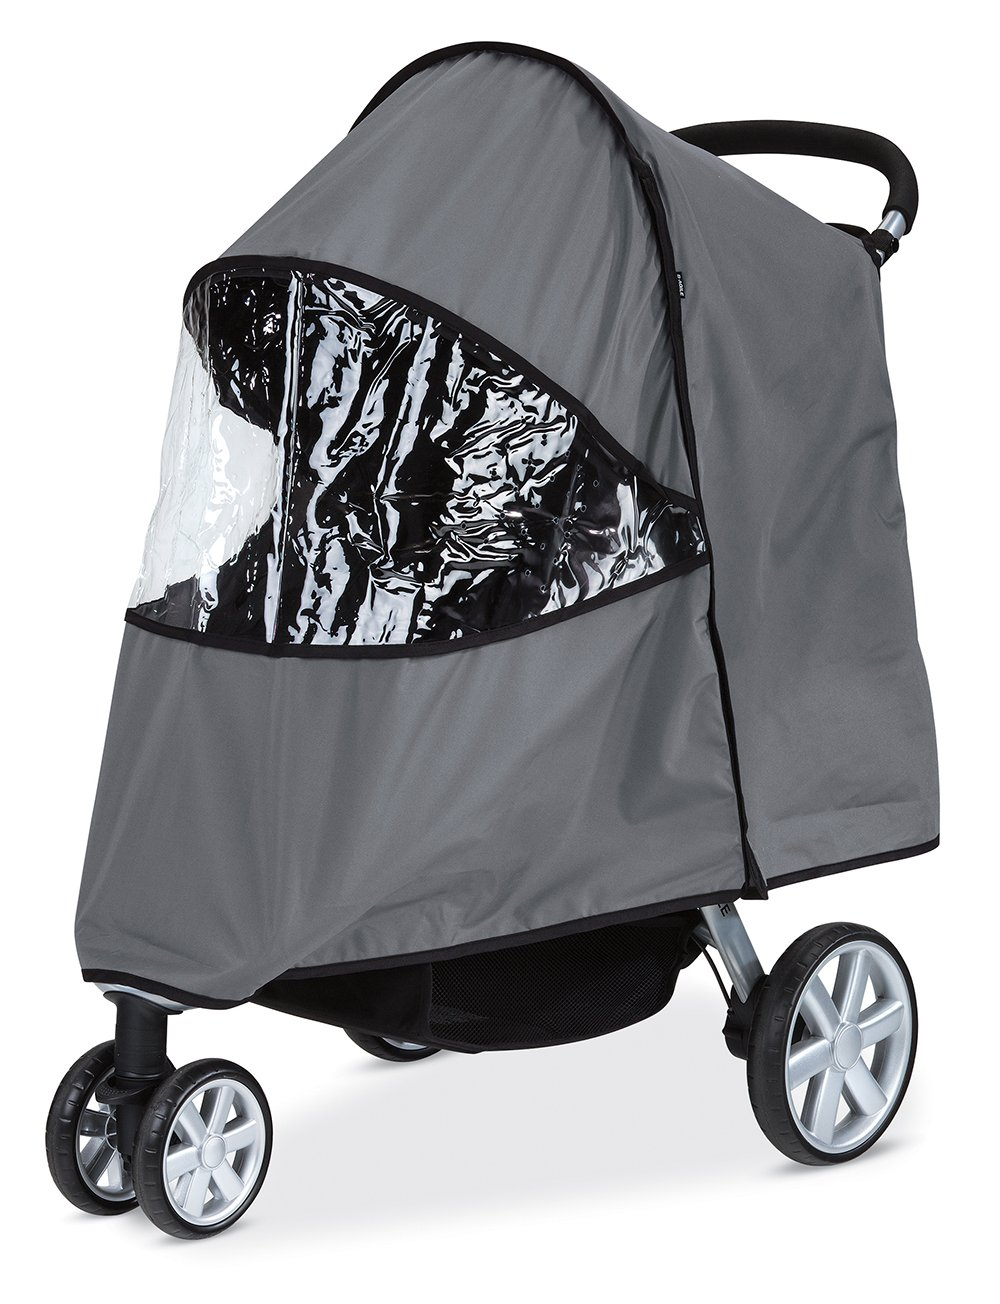 Britax Single B-Agile, B-Free, Pathway Strollers Wind and Rain Cover